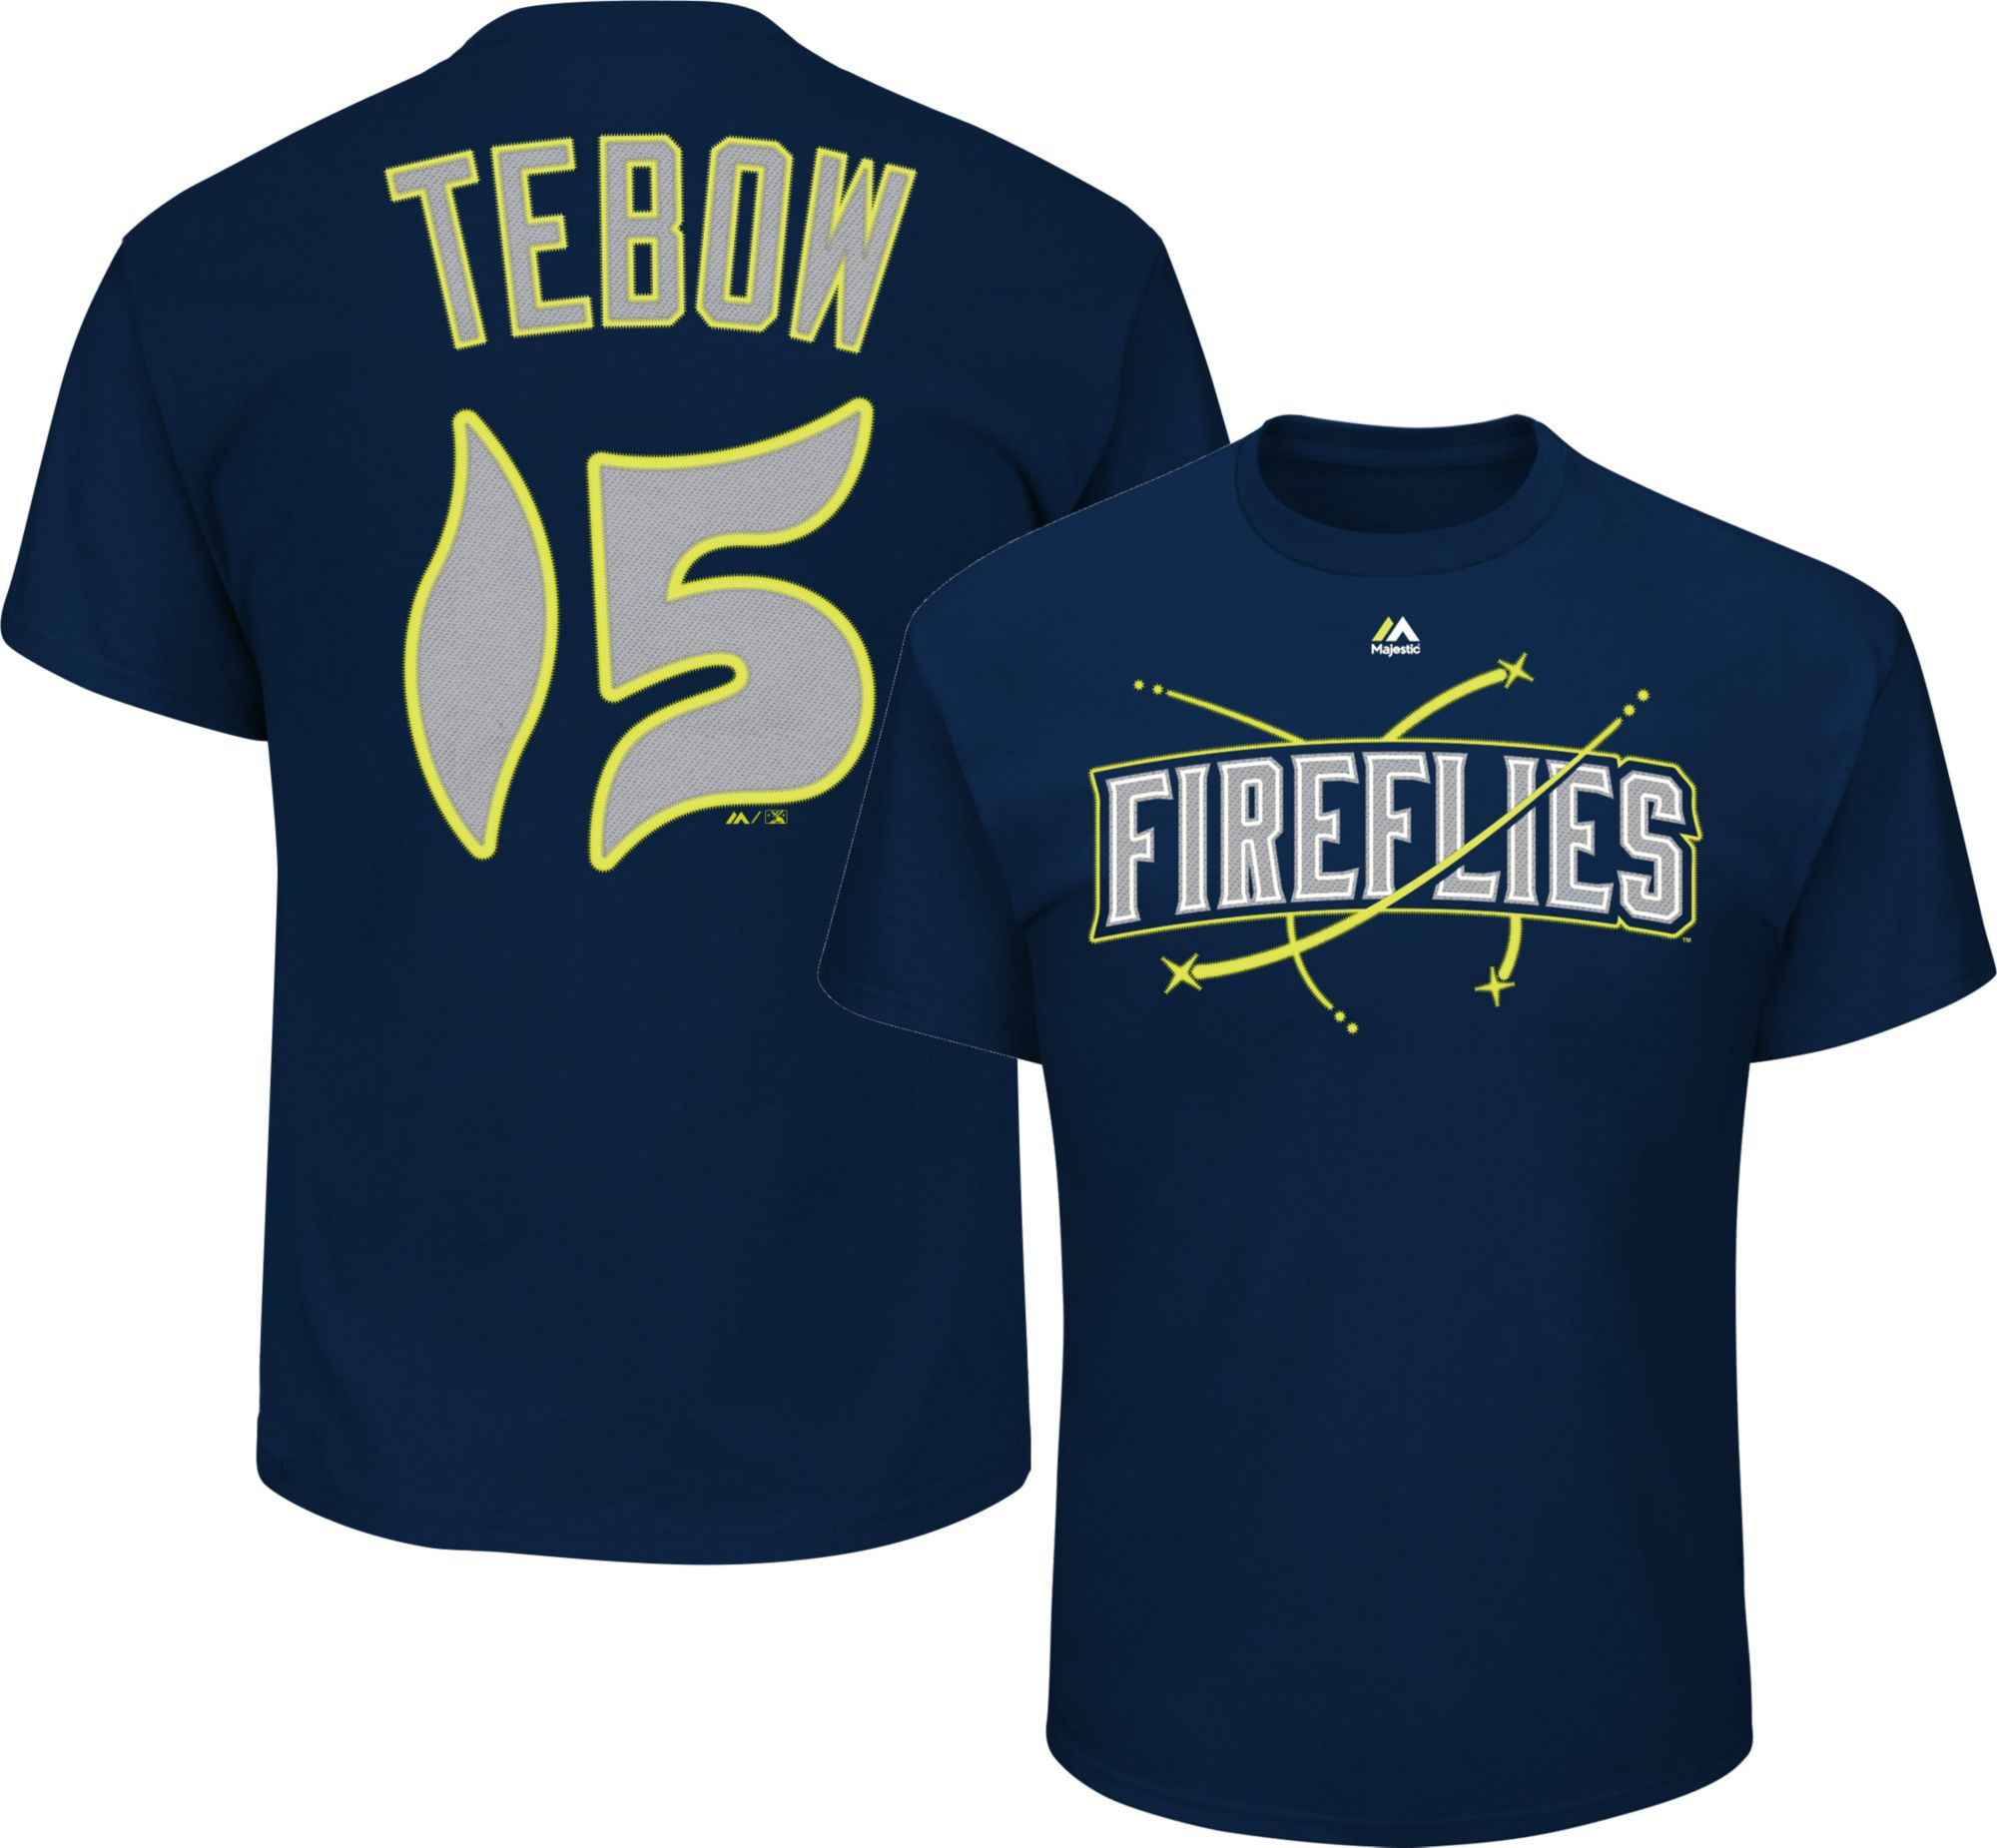 ccfd39337 ... Majestic Youth Columbia Fireflies Tim Tebow 15 Navy T-Shirt 2017 MenS  Youth ...